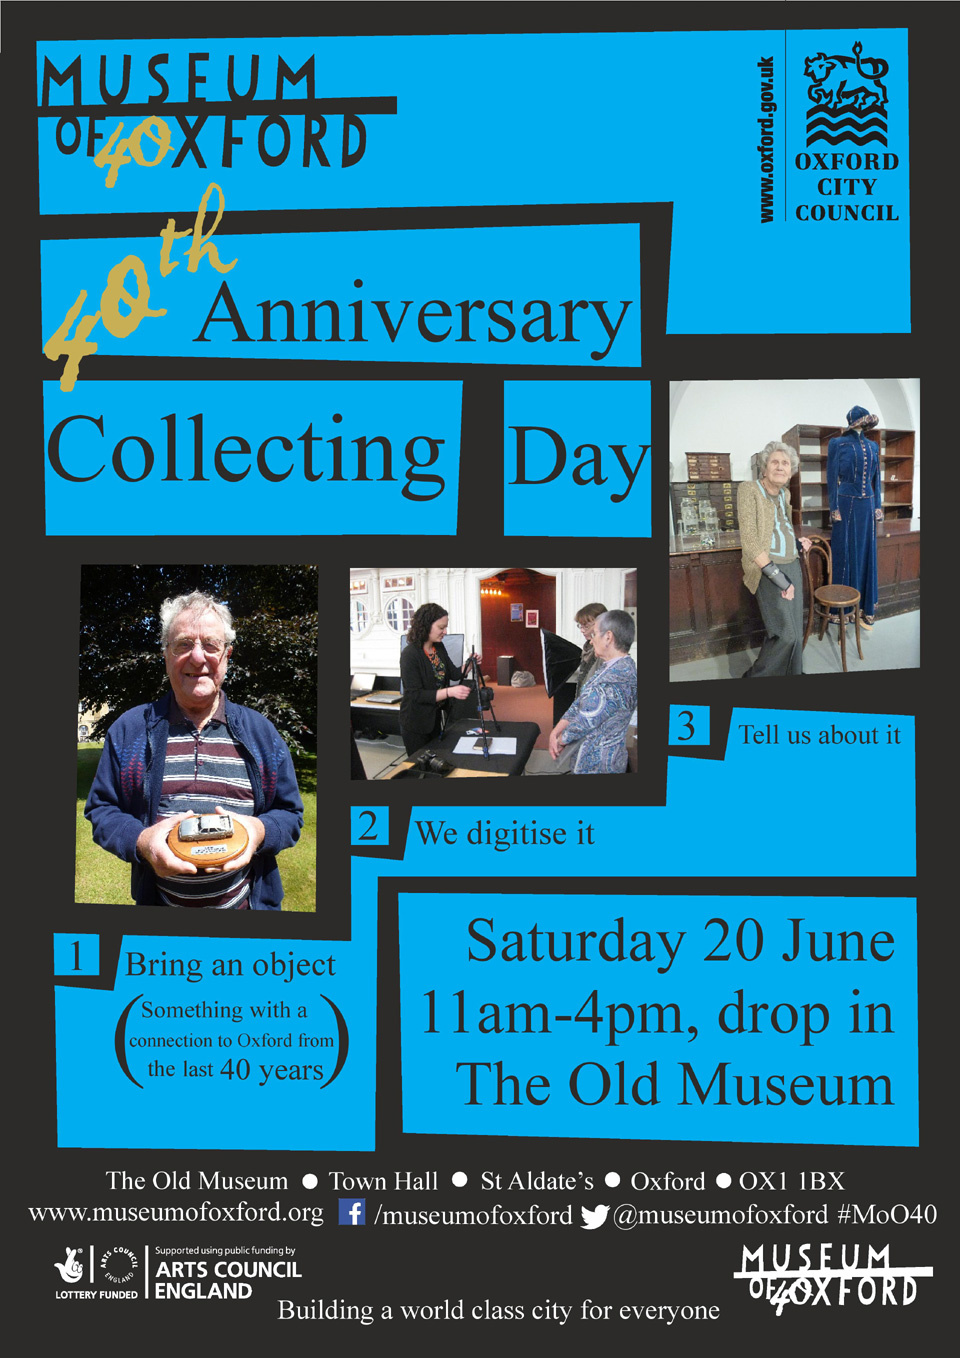 Document your objects and textile objects from Oxford's past 40 years or so